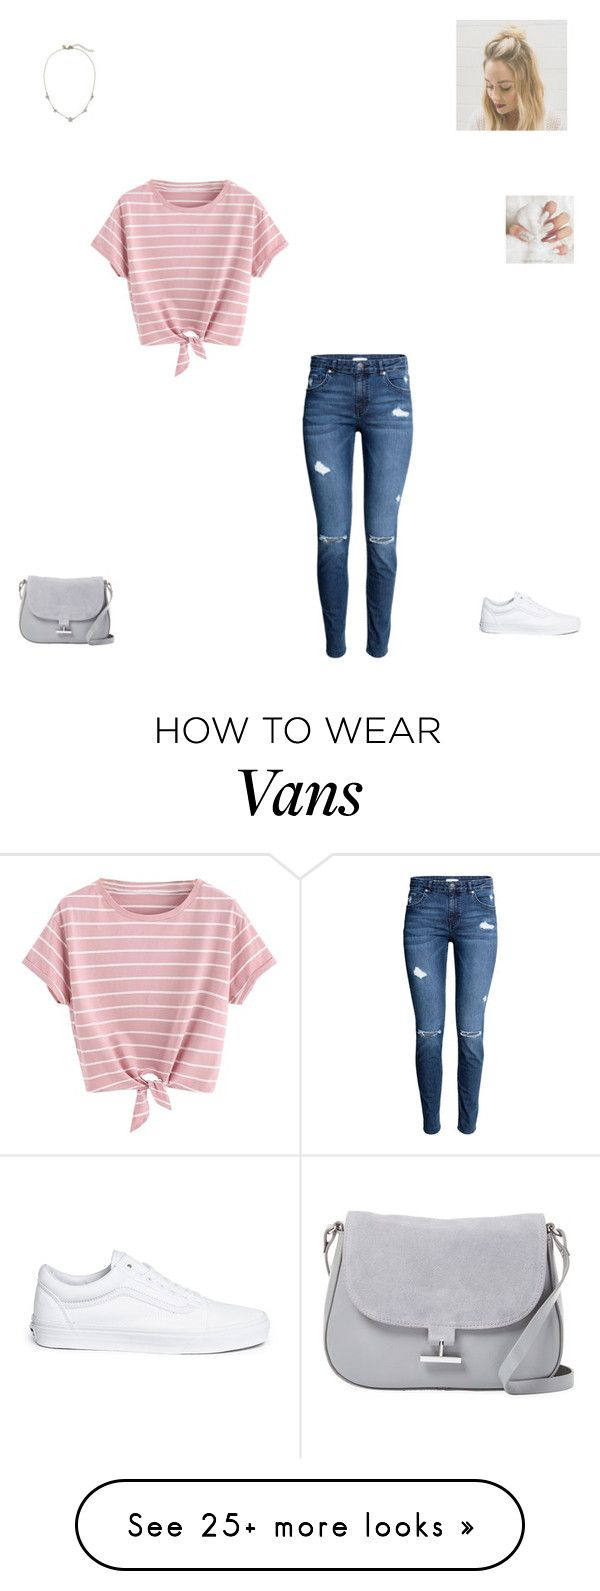 """""""Casual day #29"""" by synclairel on Polyvore featuring Vans, Lauren Conrad, Halston Heritage, Winter, cute, casual and ootd"""